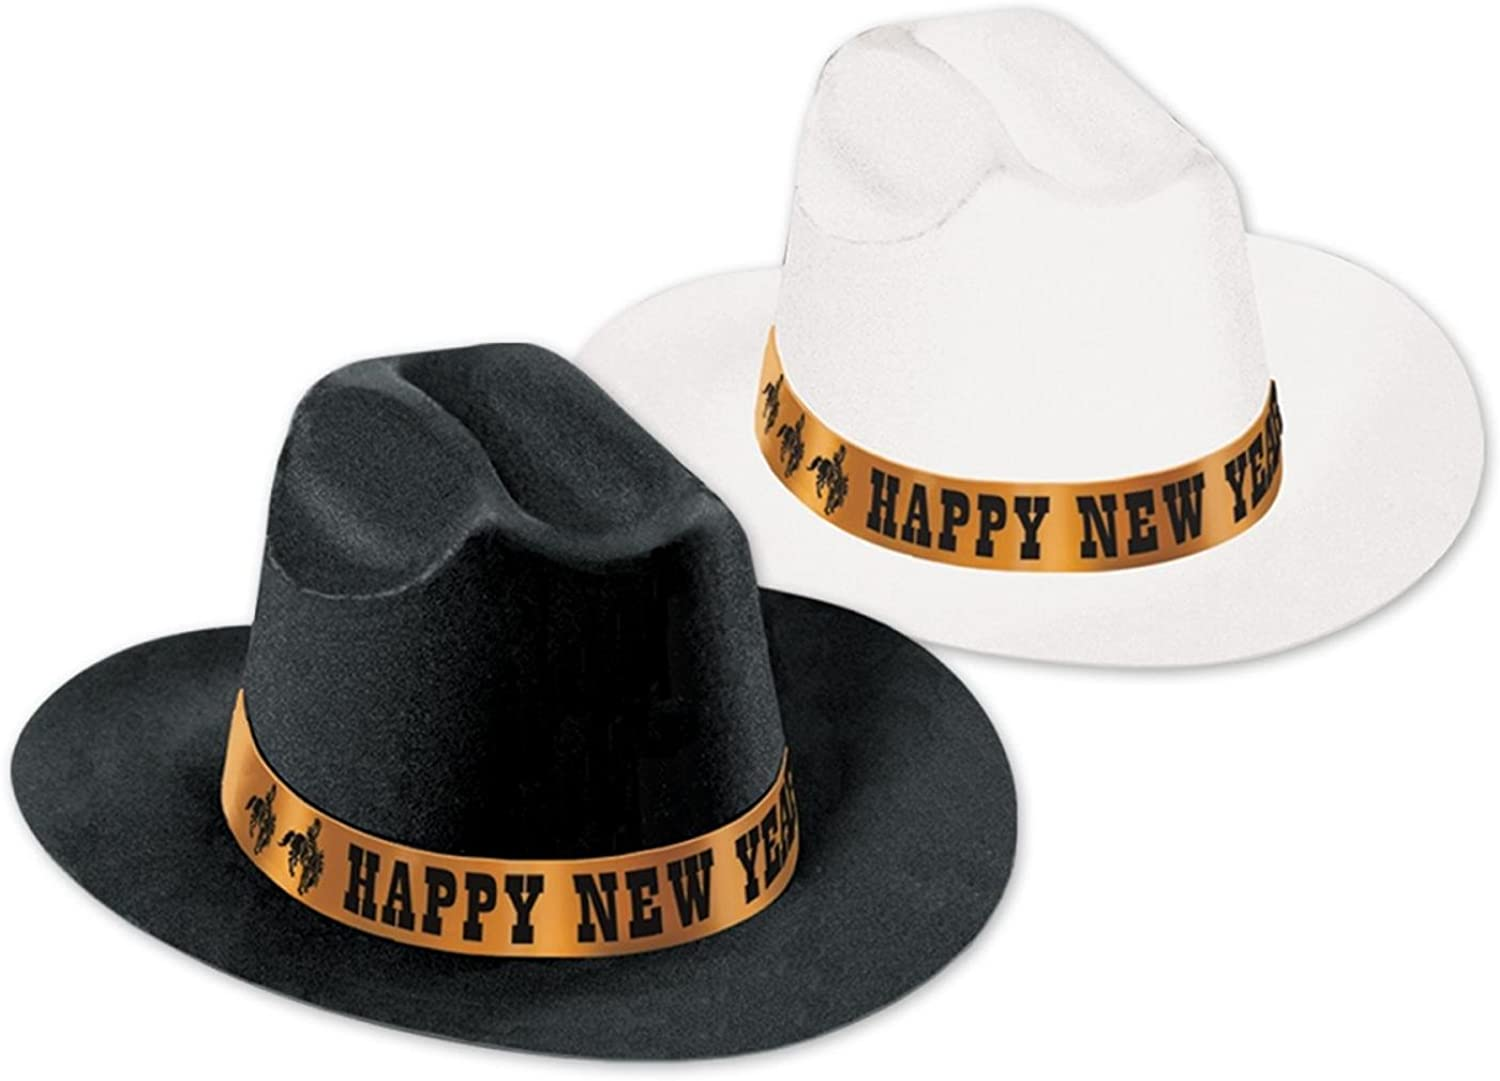 Club Pack of 25 Festive Happy New Years    Legacy Party Favor Hats 6aed22